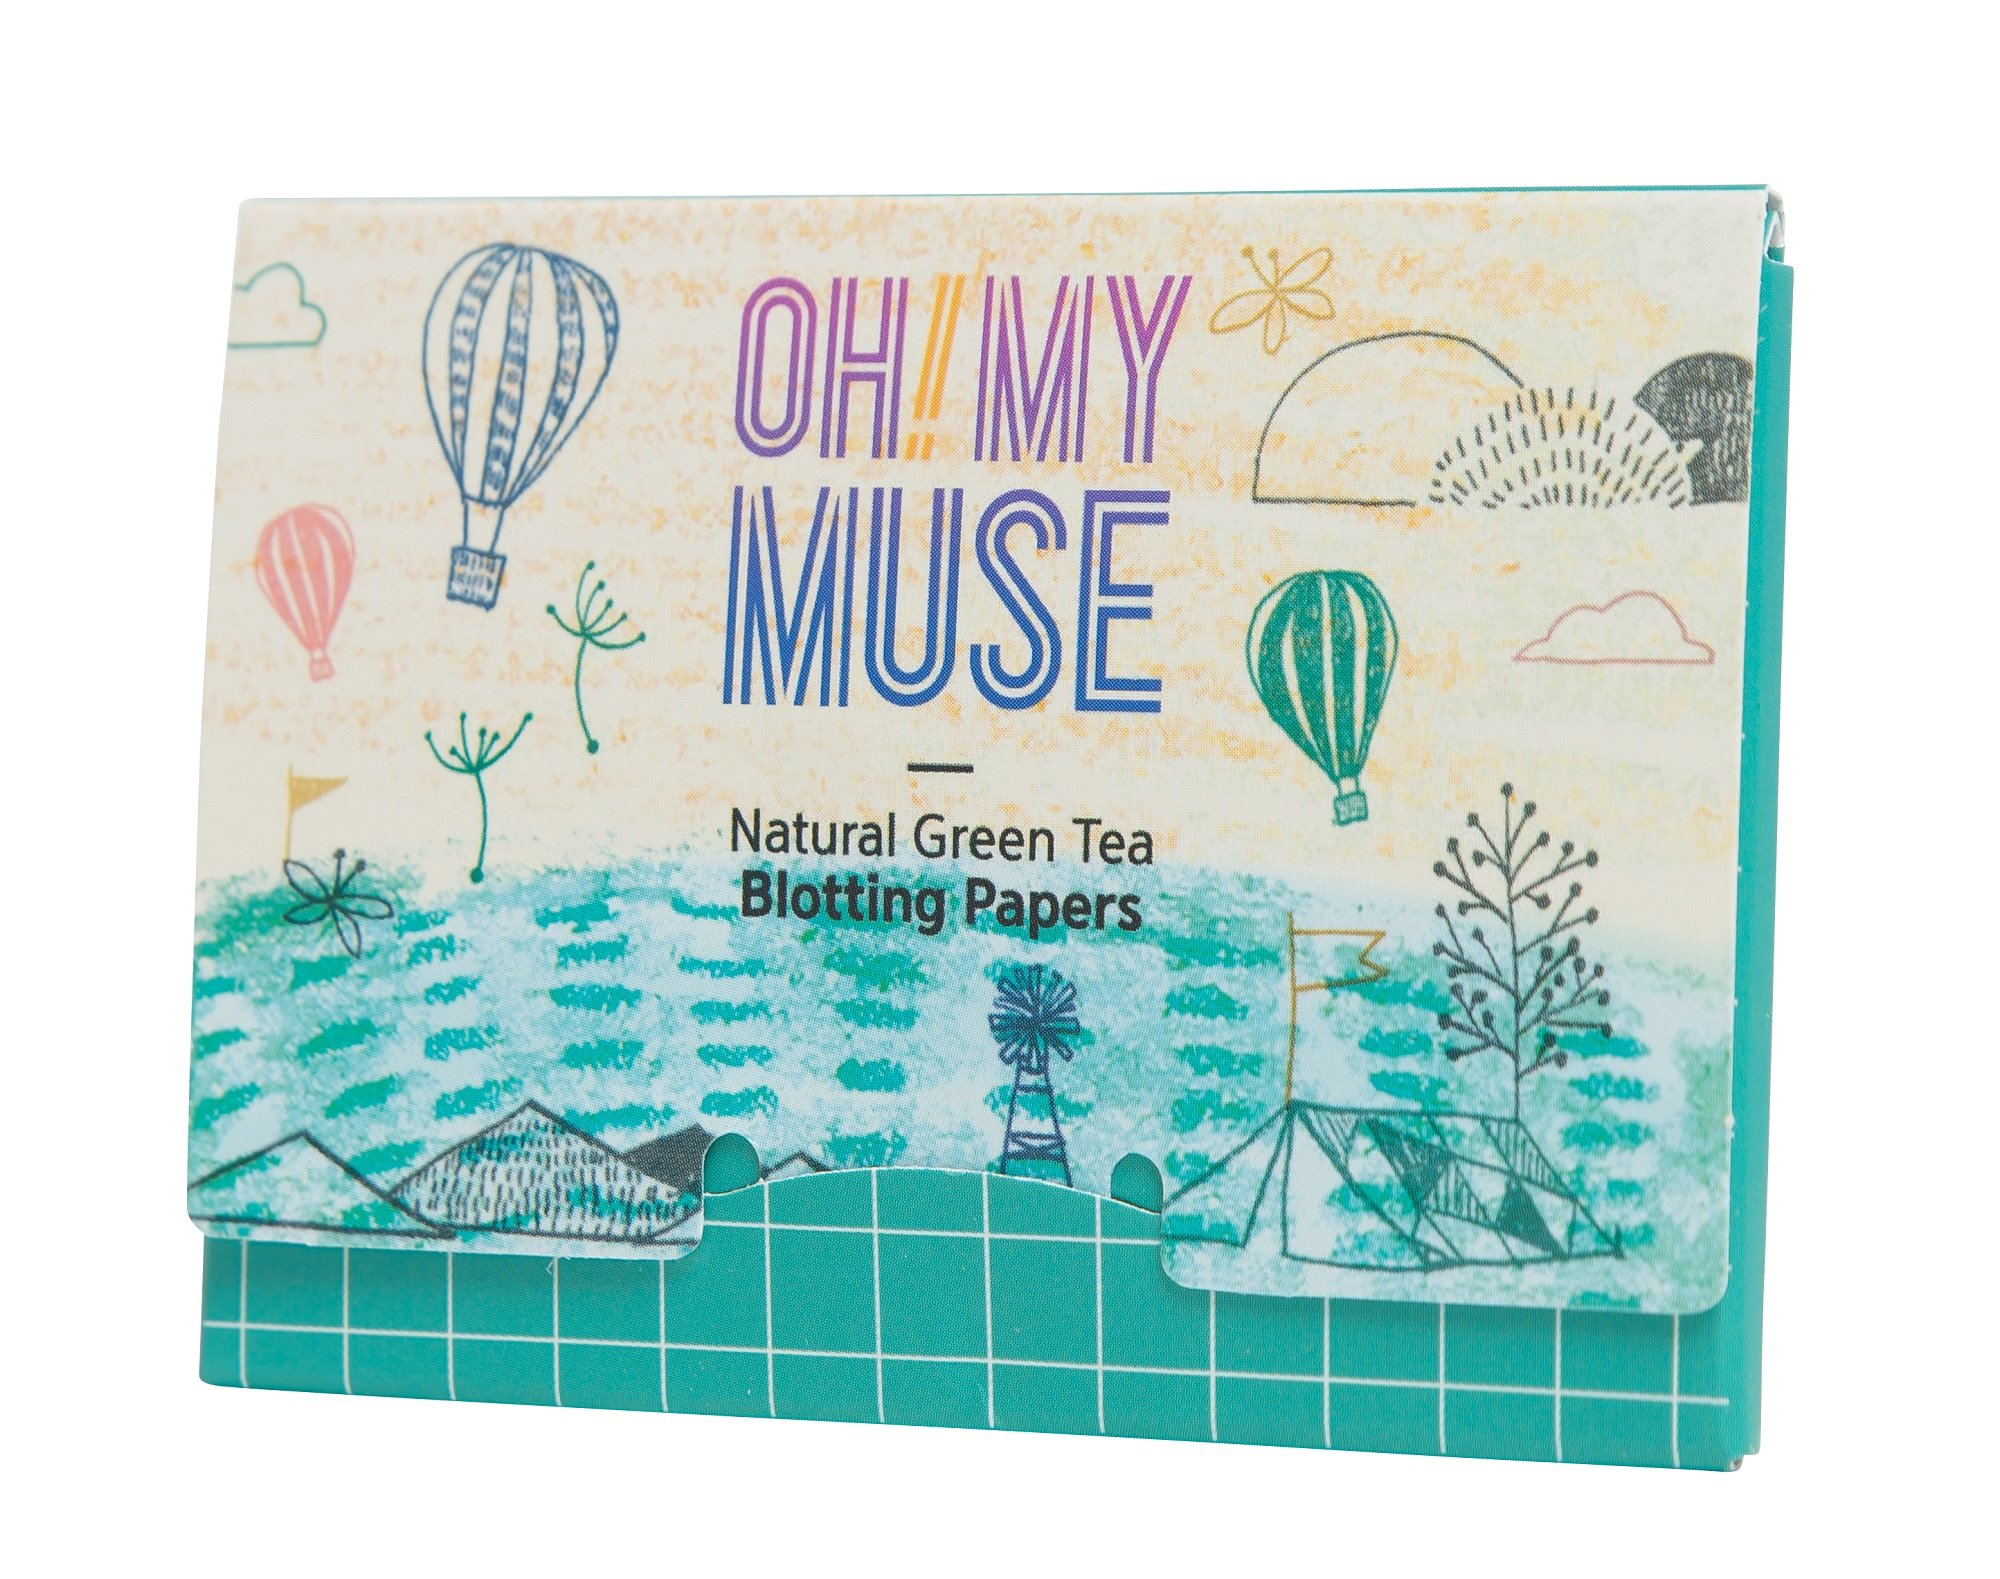 [Oh!My Muse] Natural Green Tea Oil Absorbing Sheets, Blotting Paper, 50 count (10 Packs) by Oh!My Muse (Image #5)